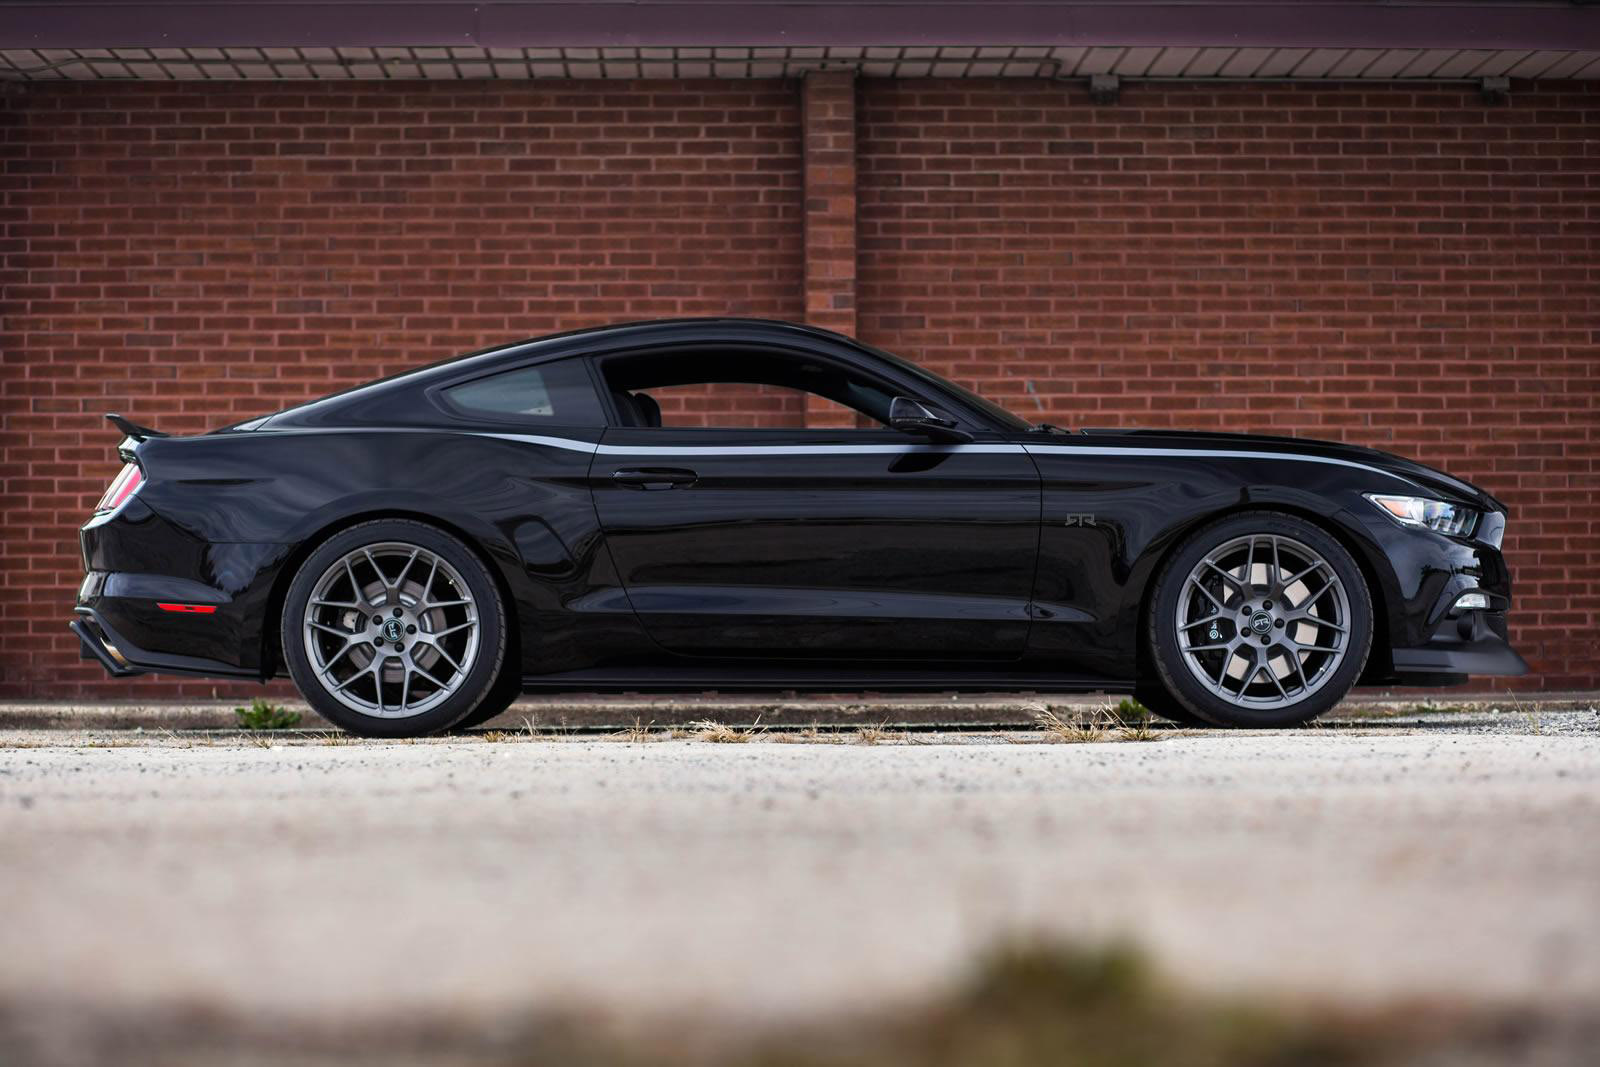 2015 Ford Mustang Rtr Boasts 725 Horsepower